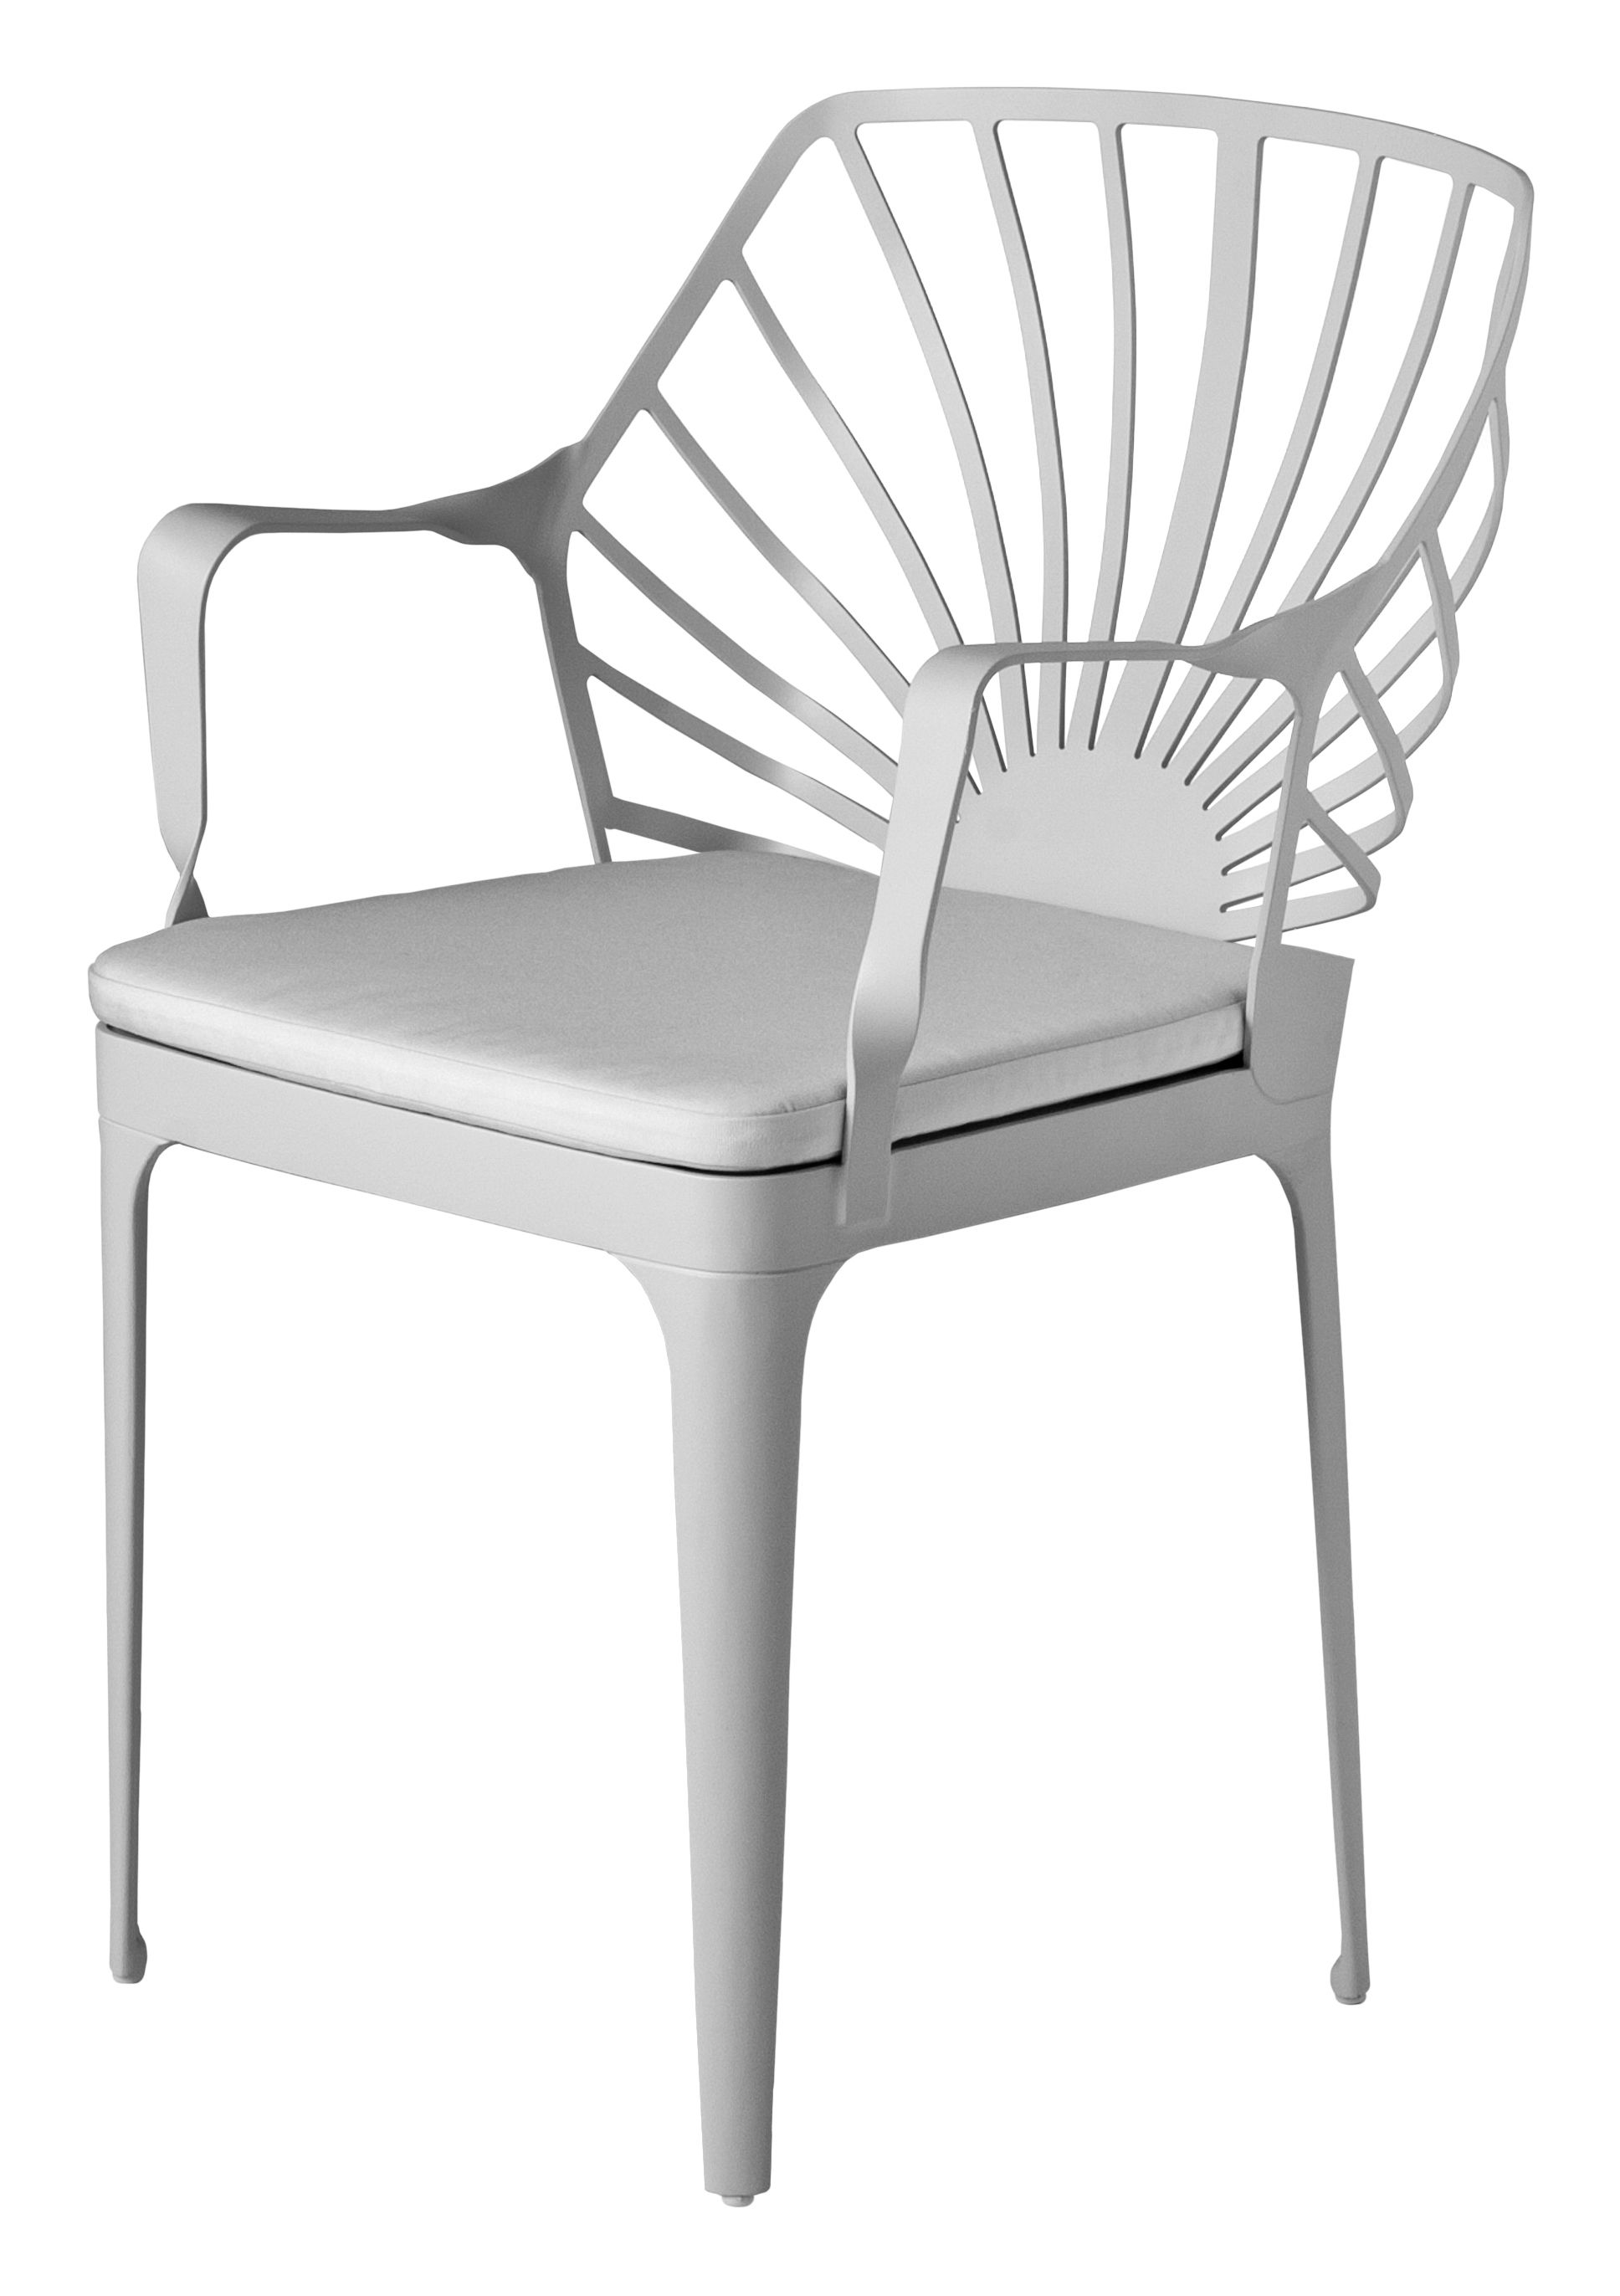 Furniture - Chairs - Sunrise Armchair - With cushion by Driade - White - Fabric, Lacquered aluminium